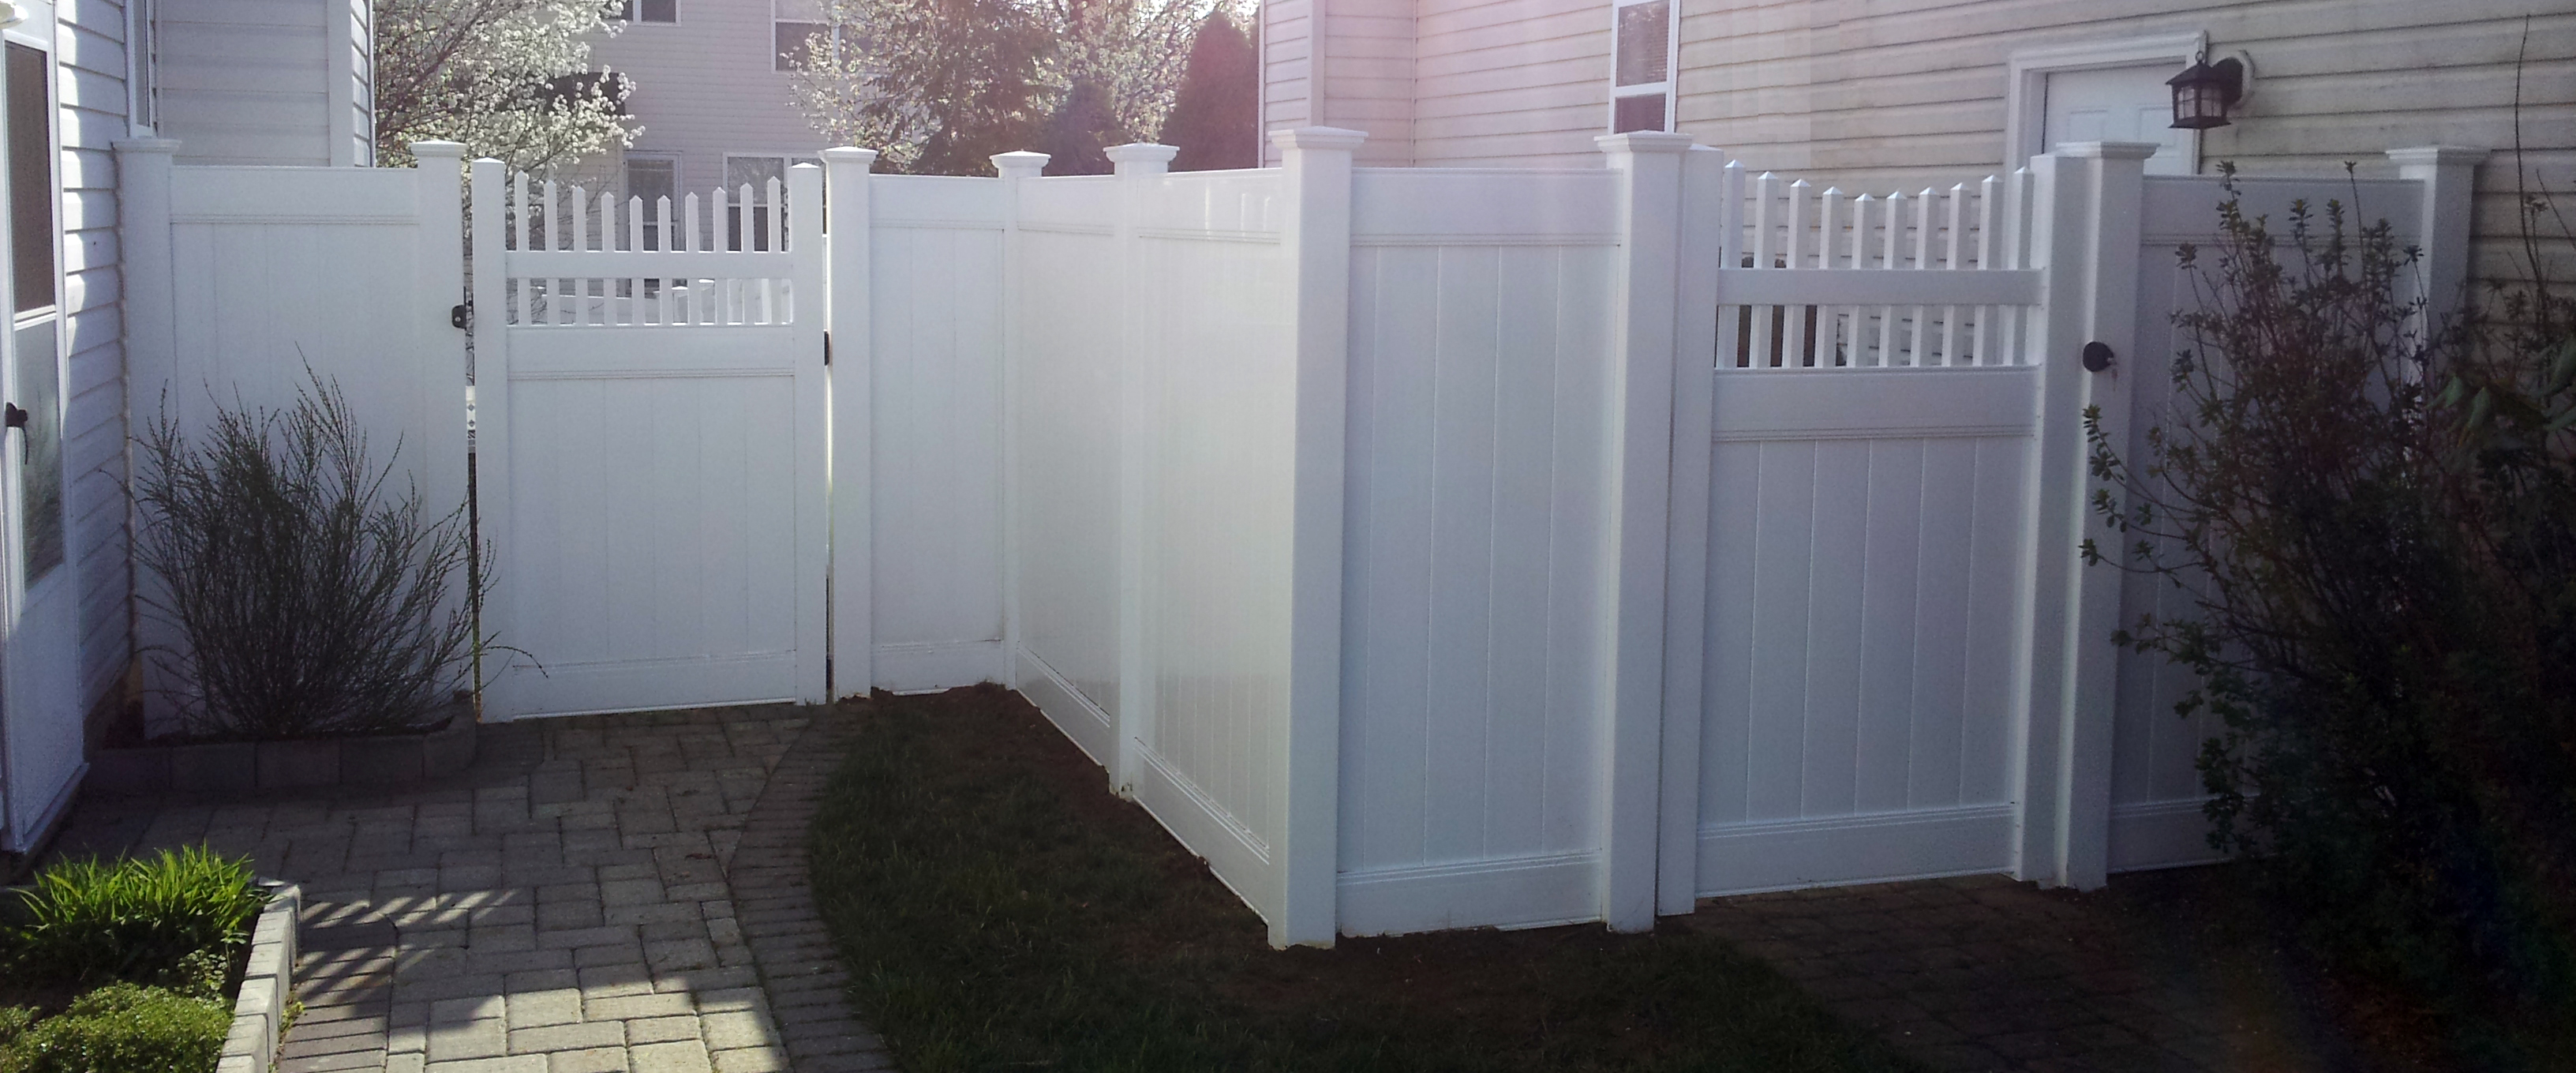 Pvc Vinyl Fencing With Scalloped Gate Smc Fence